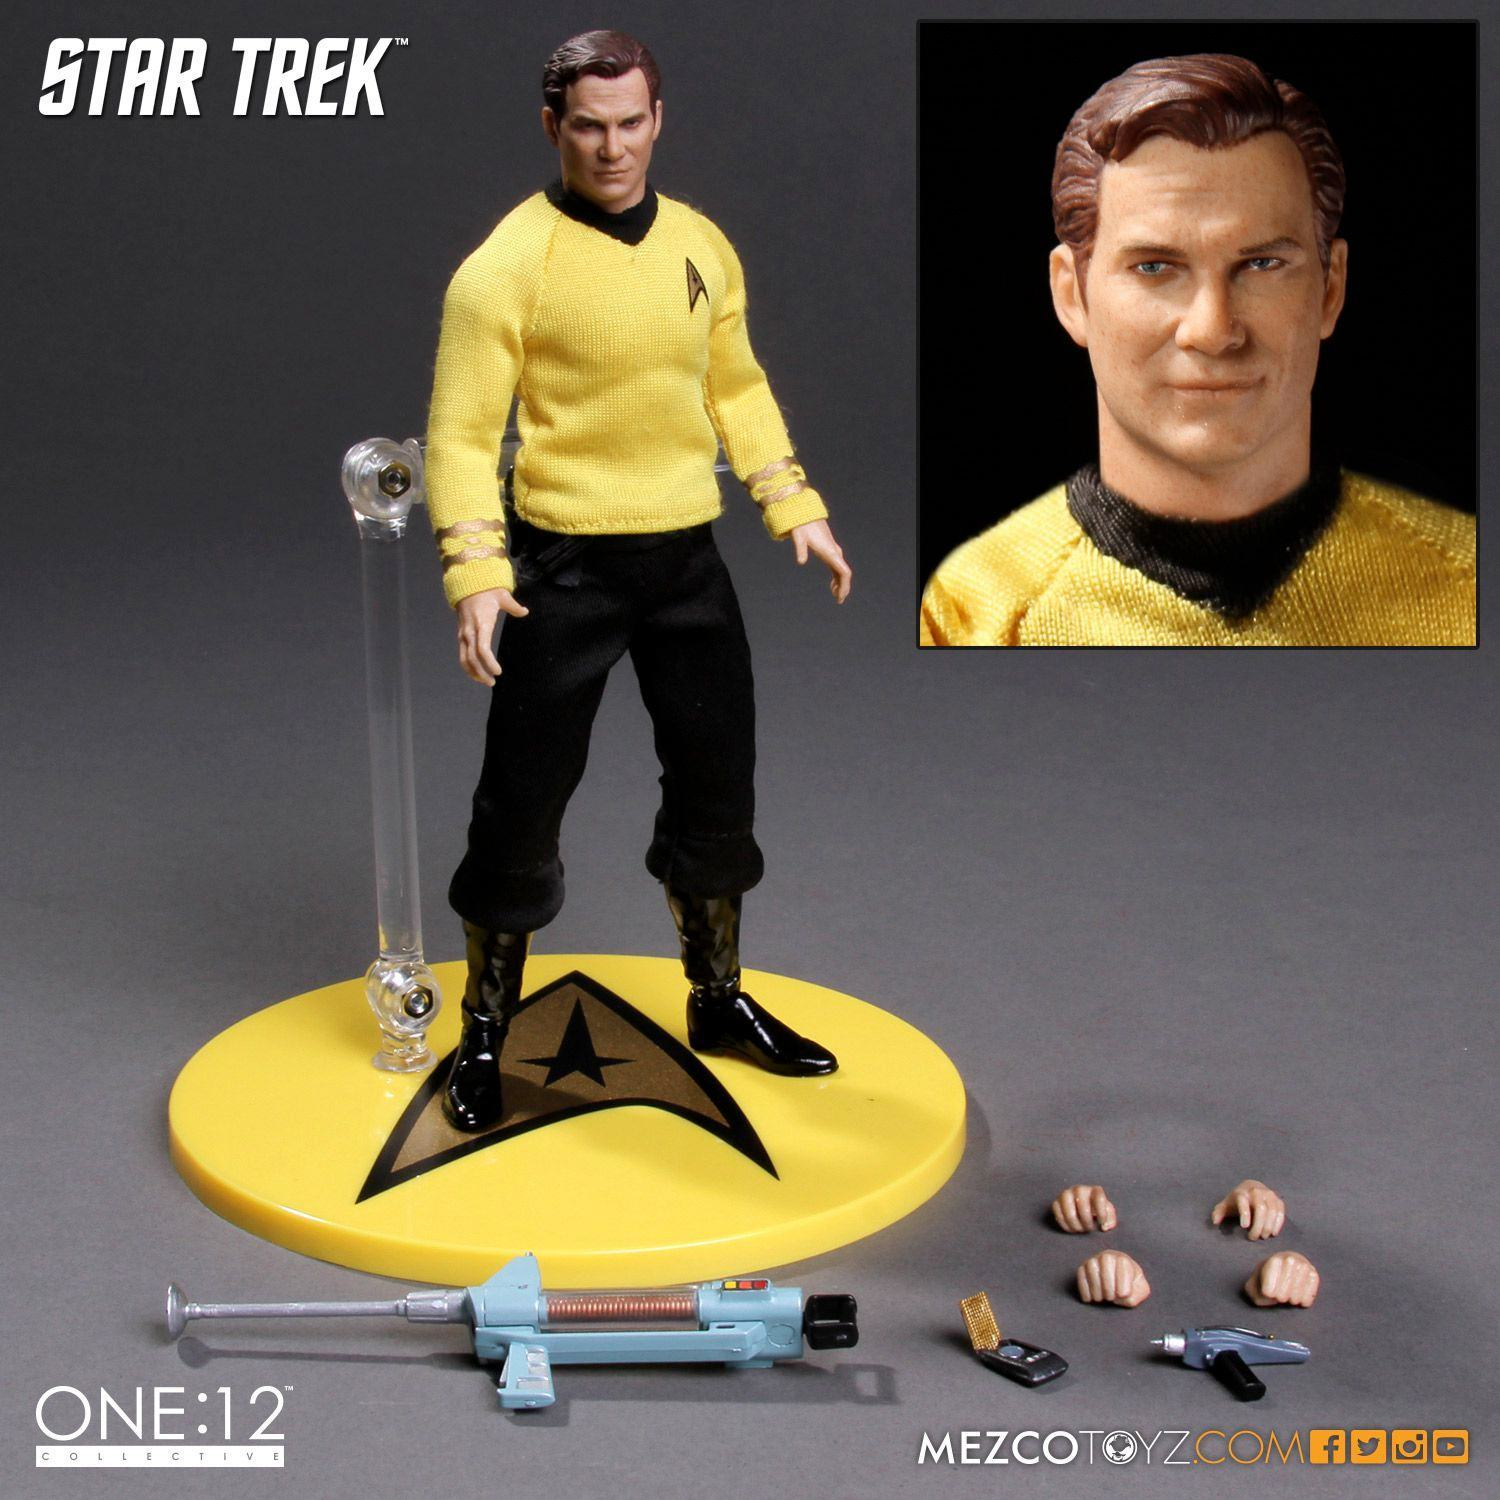 Kirk-Star-Trek-One-12-Collective-Action-Figure-02